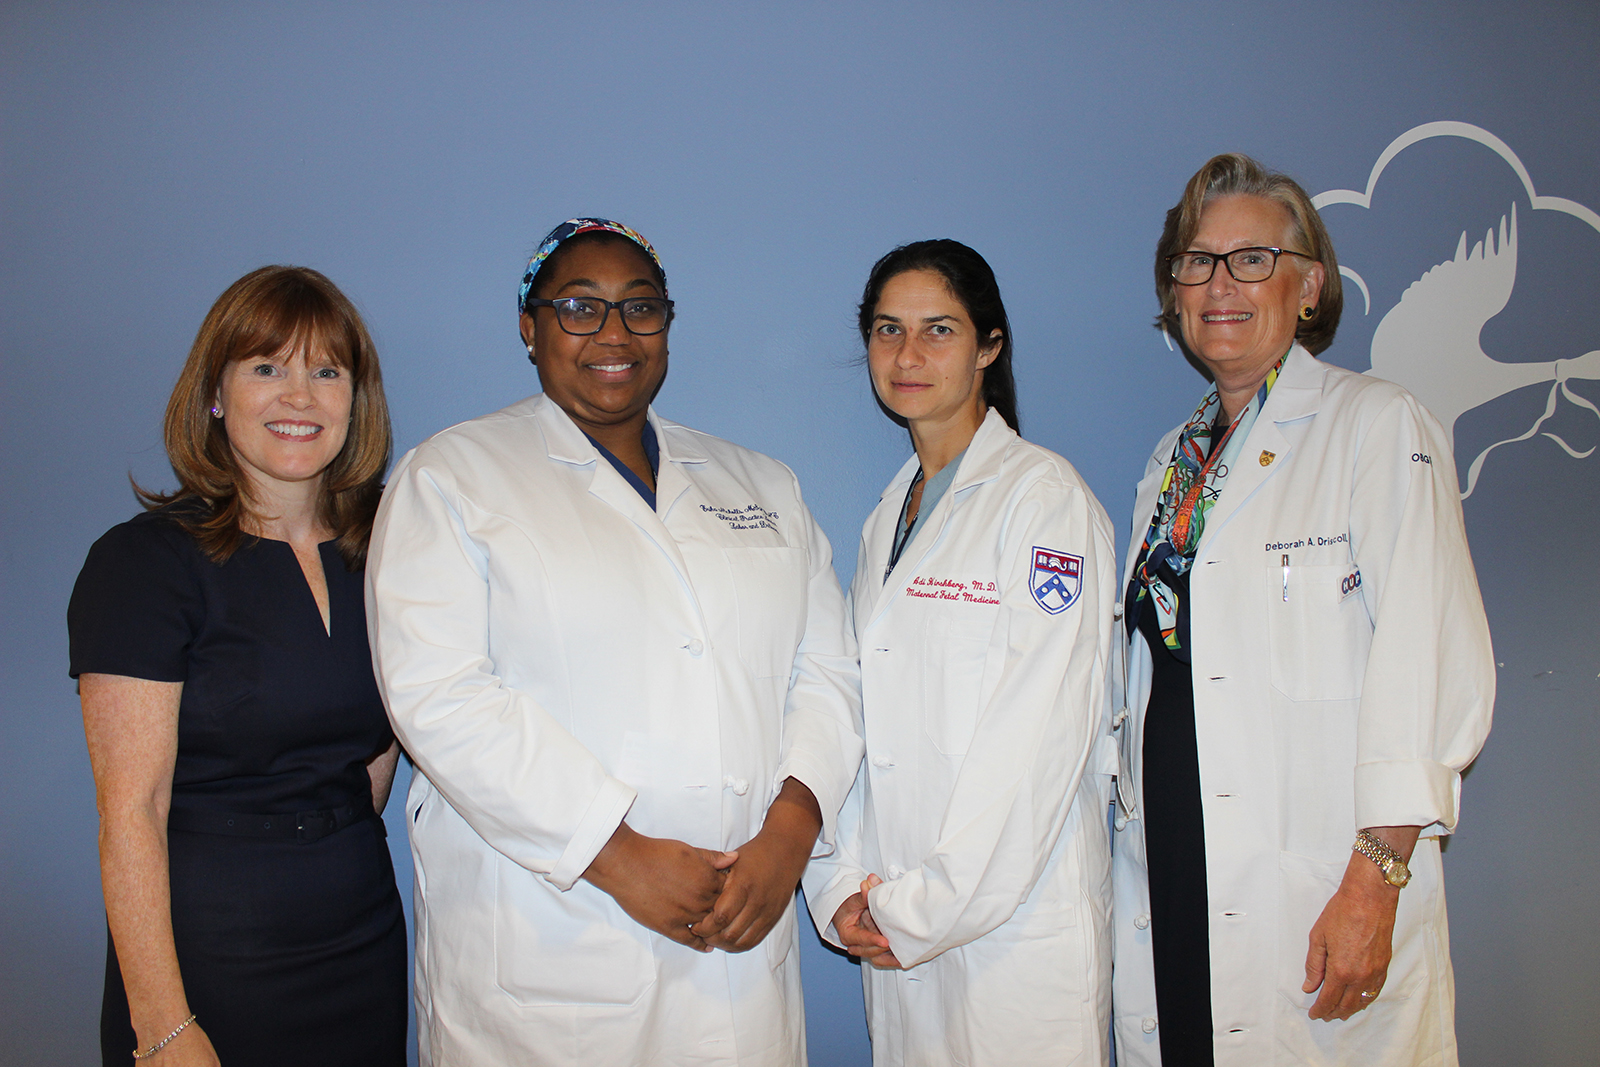 Members of the winning team at Penn Medicine's Hospital of the University of Pennsylvania.